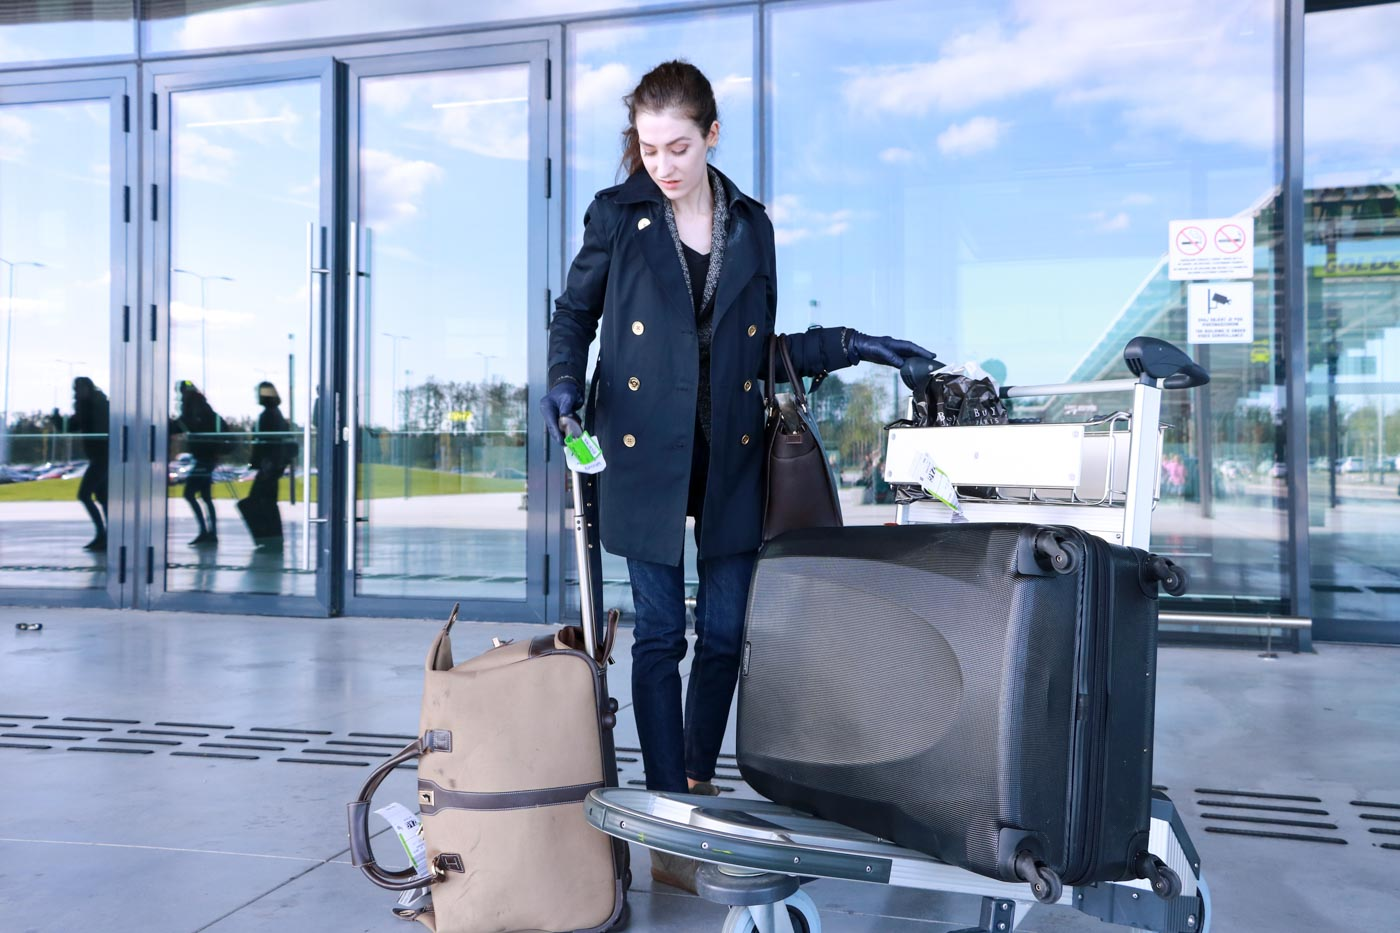 Fashion Blogger Veronika Lipar of Brunette from Wall Street on how to dress to the airport